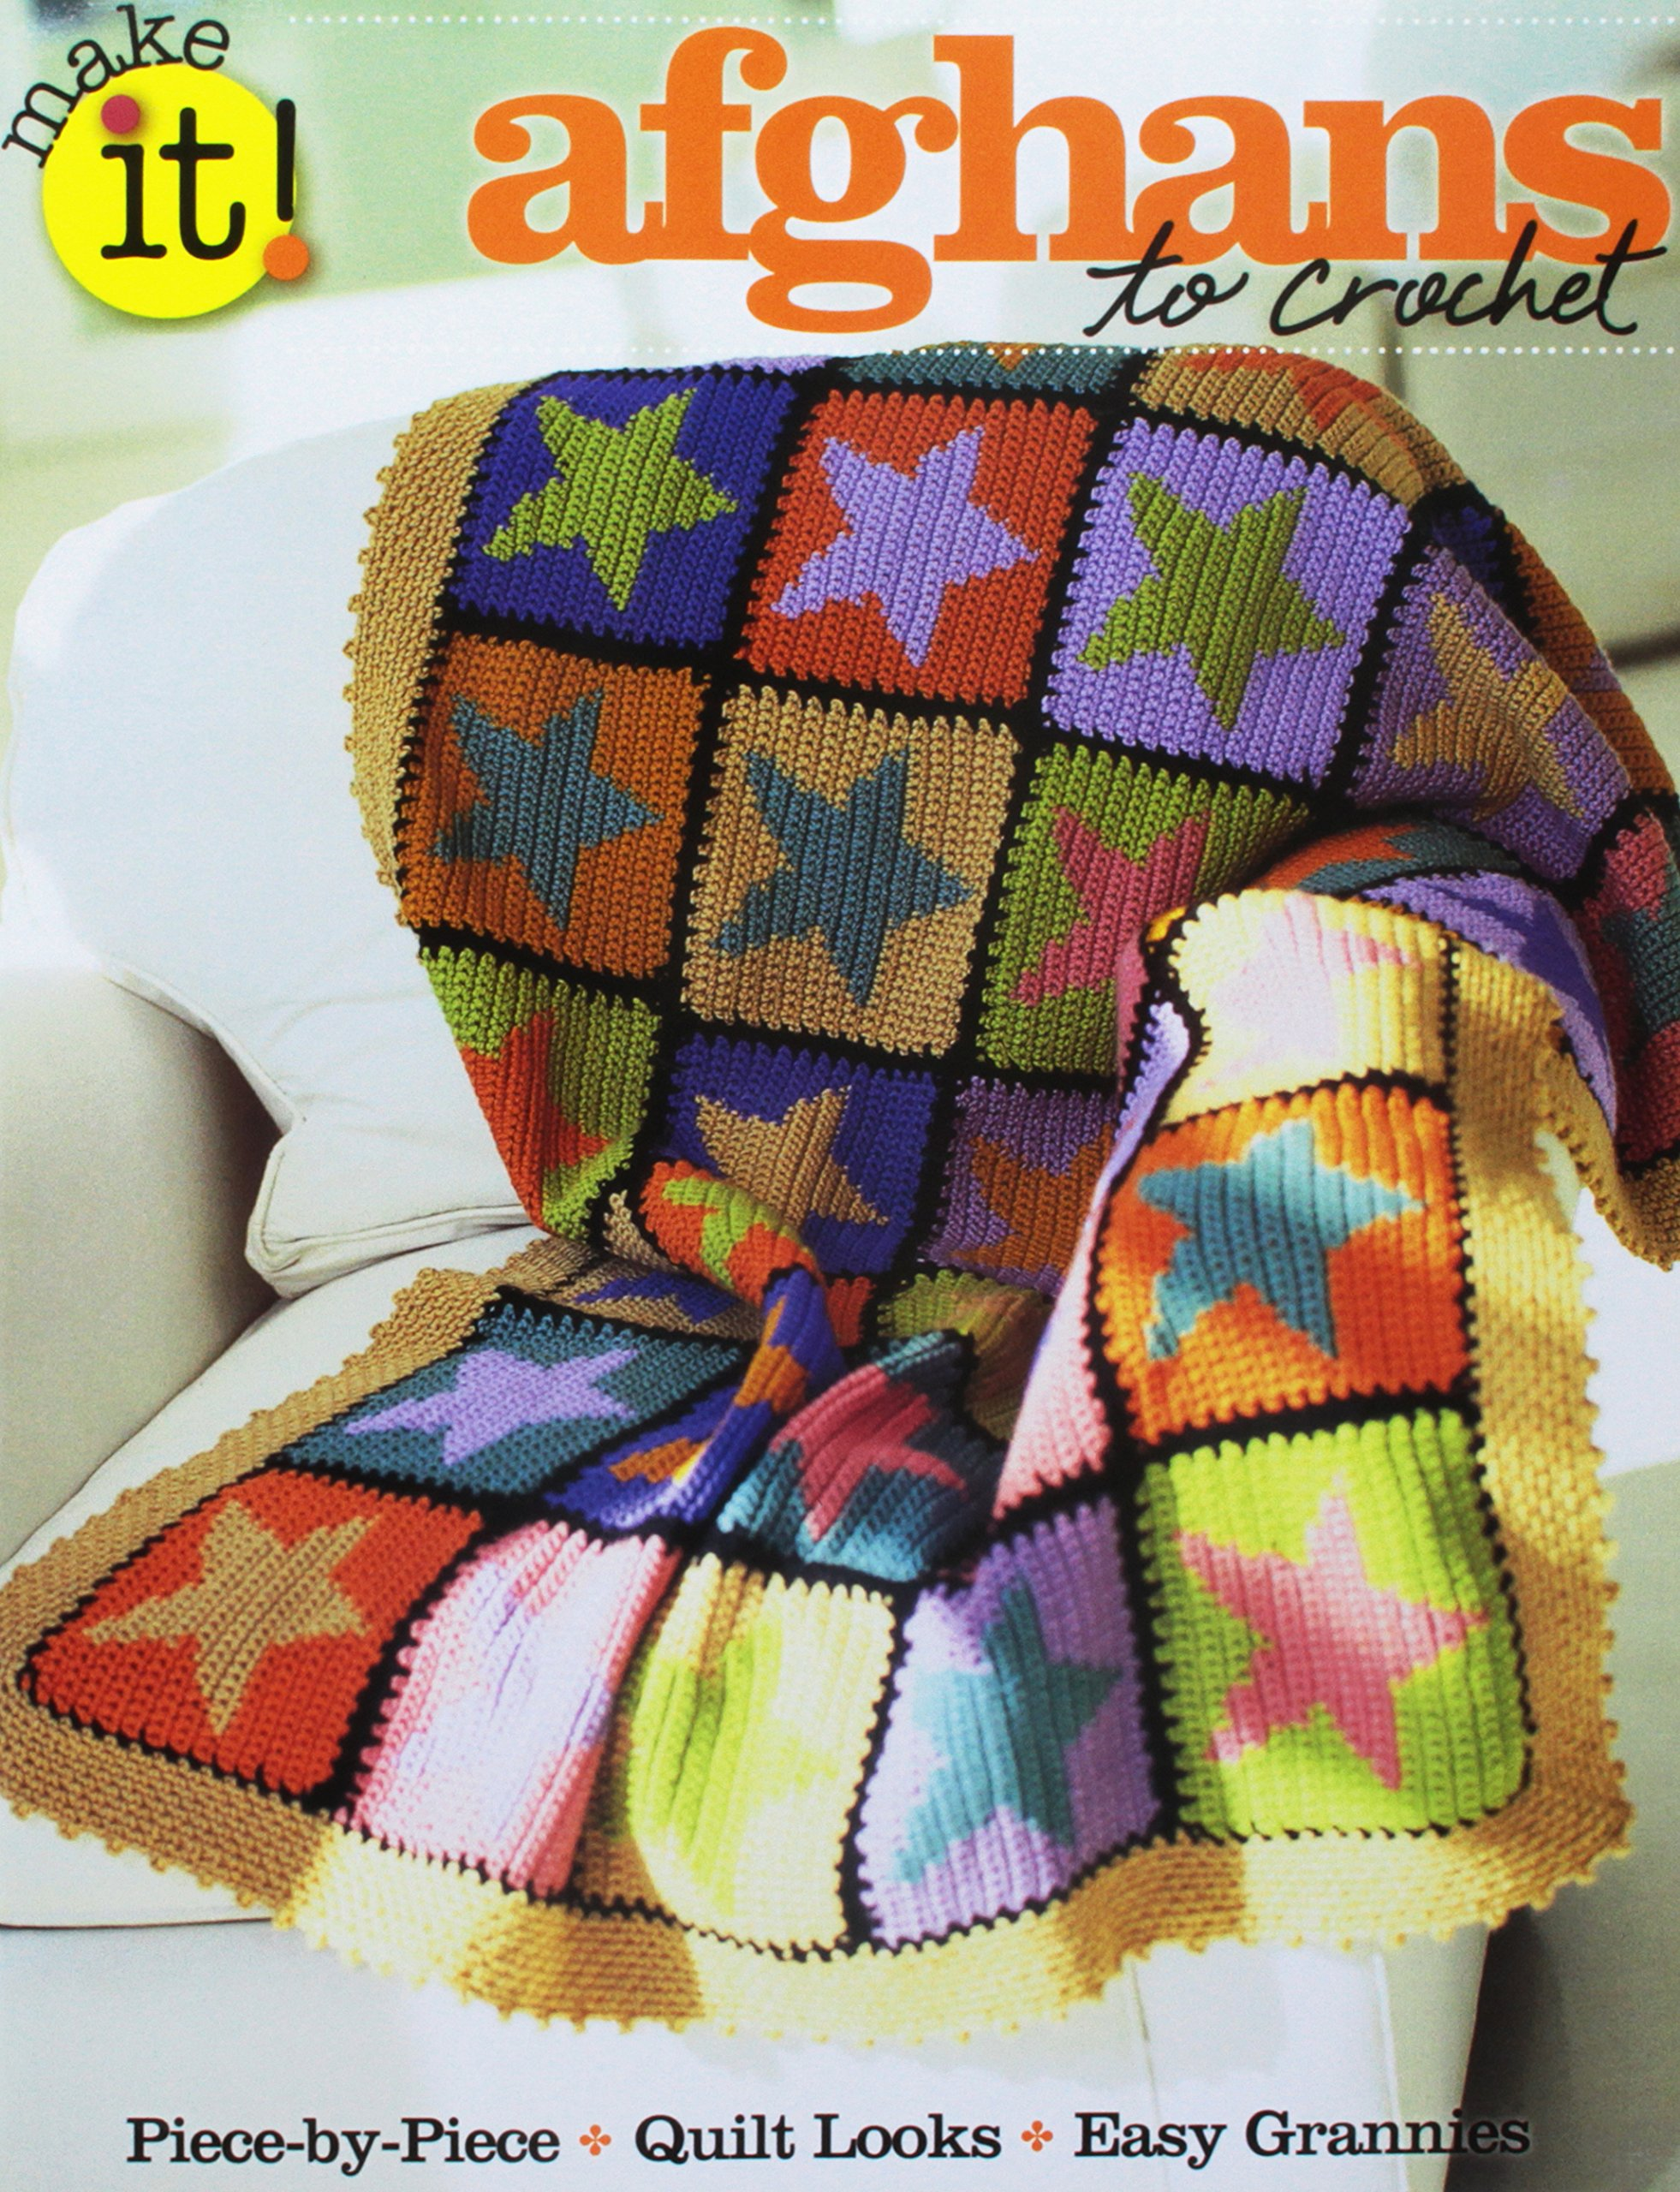 Afghans to Crochet Paperback – December 20, 2012 Editors of Go-Crafty Soho Publishing 1938867149 SO-67149